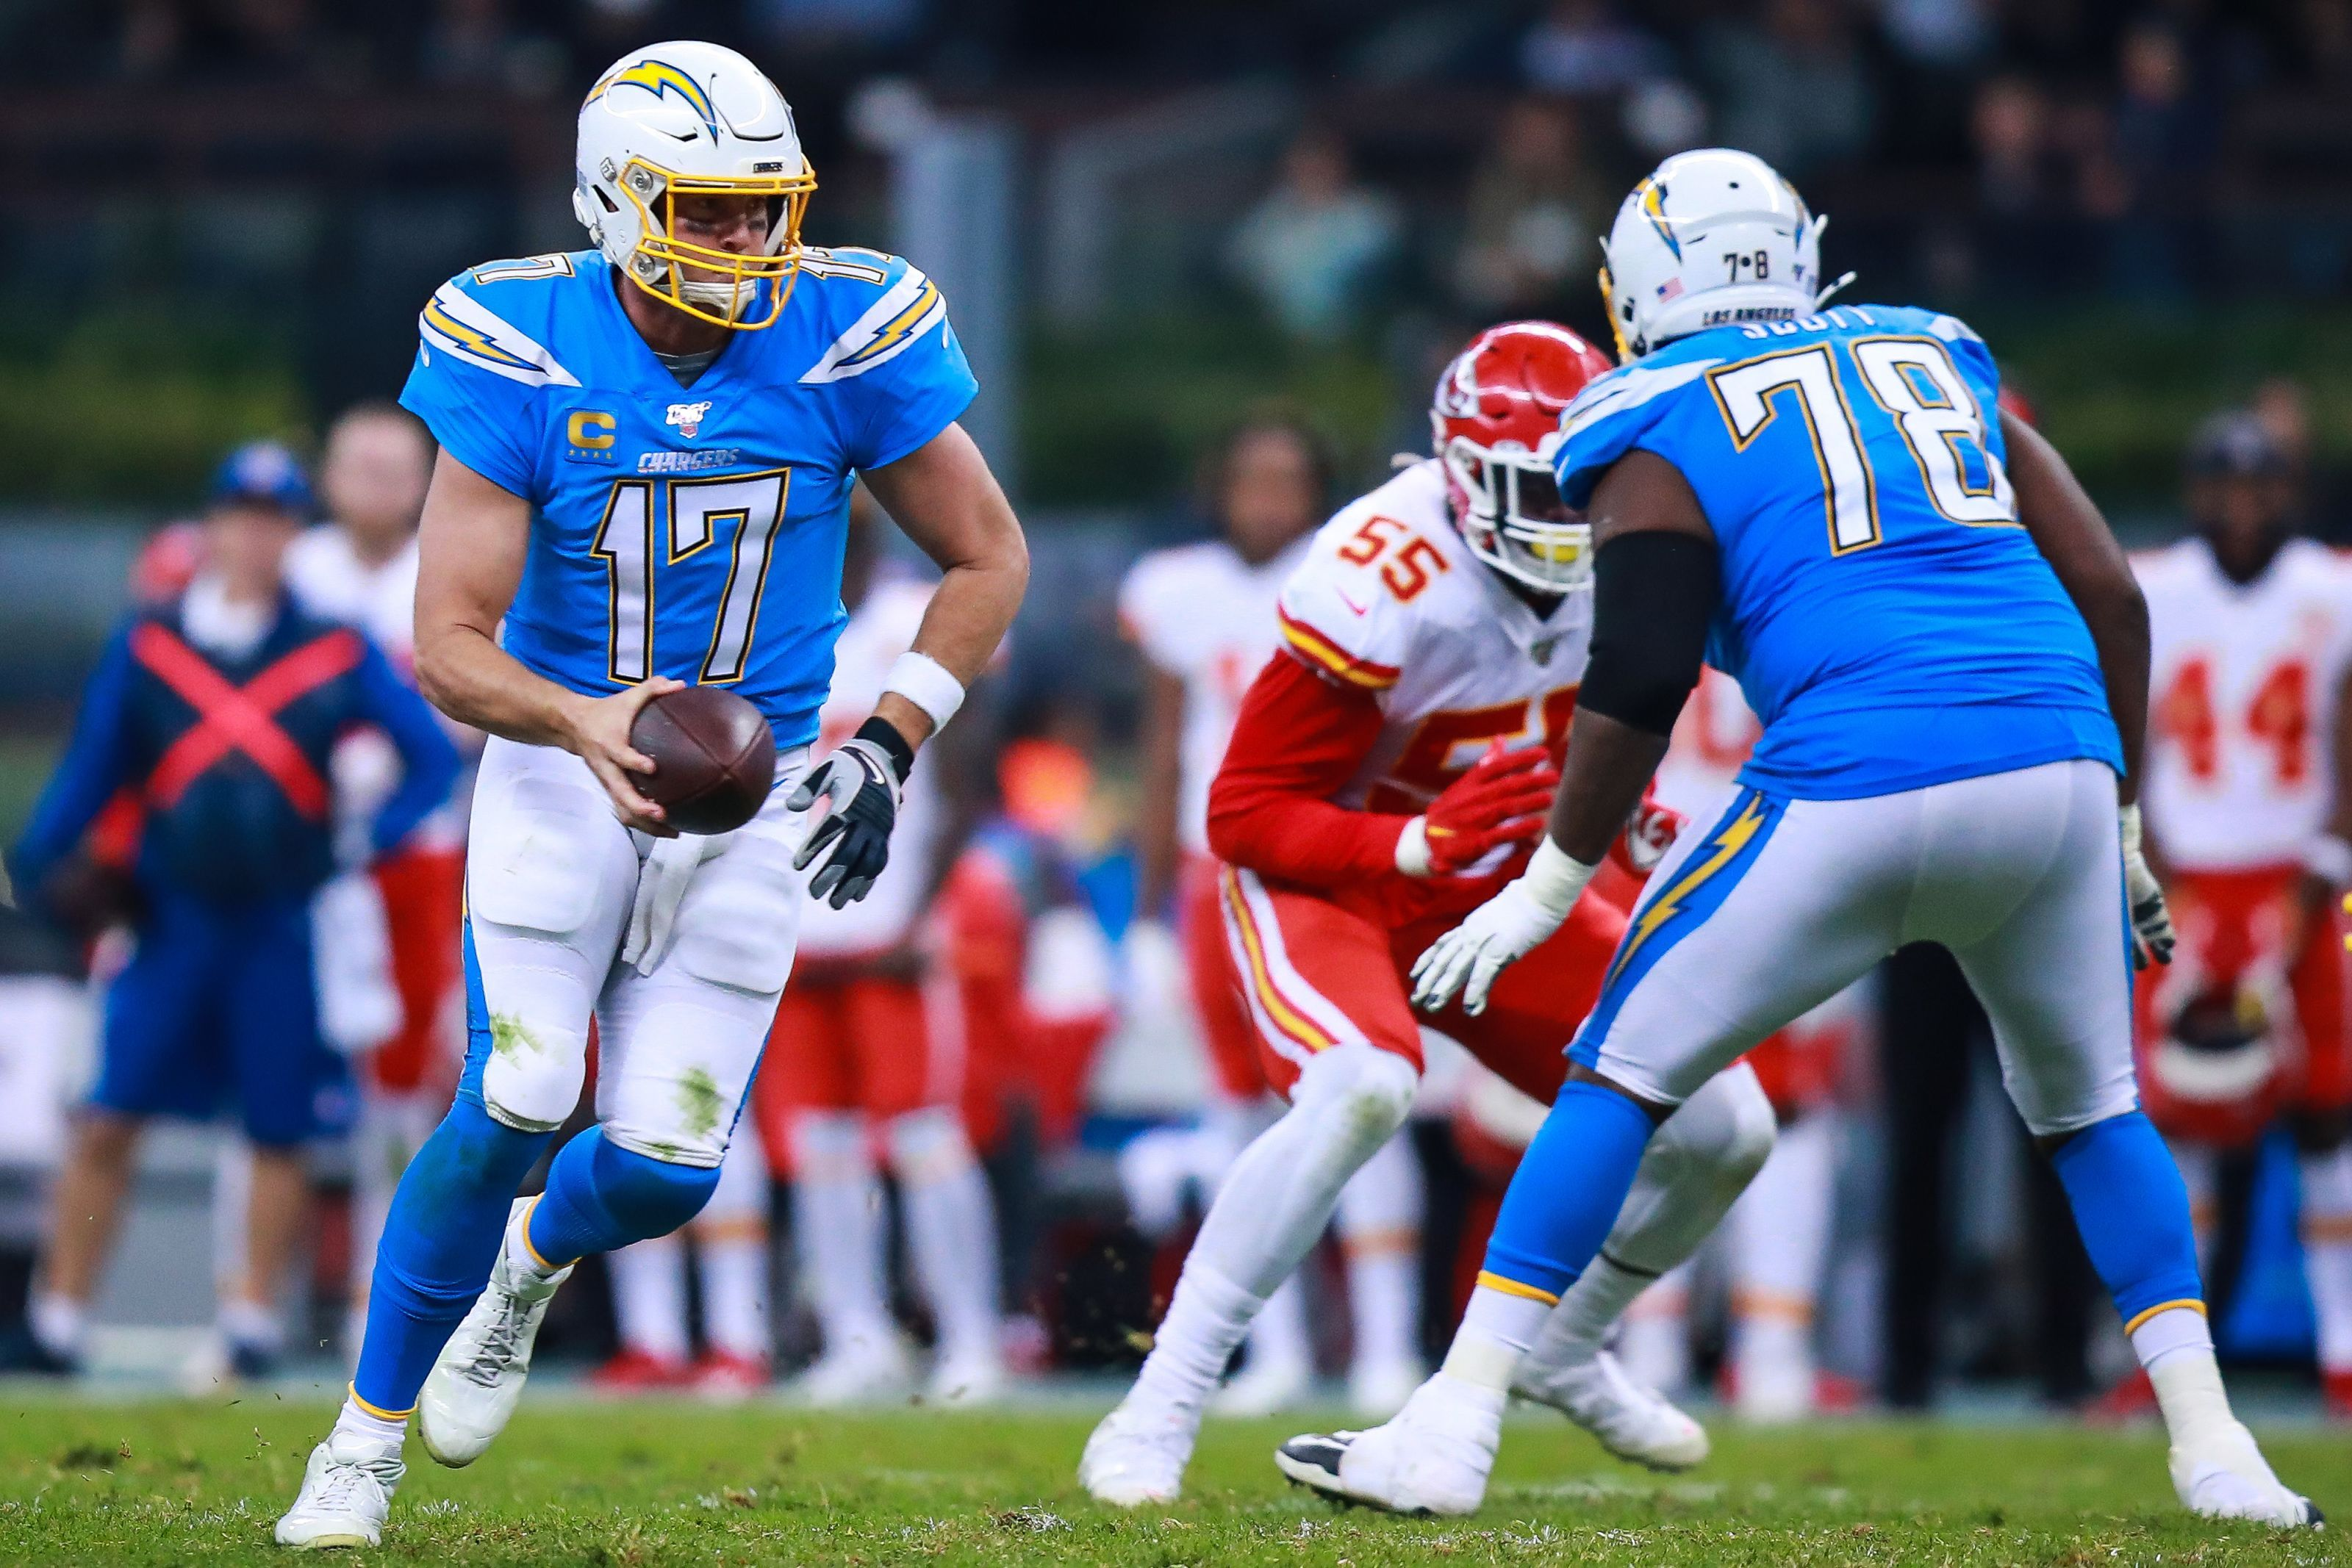 Los Angeles Chargers Staff Predictions For Week 17 Vs Chiefs National Football League News Nfl News National Football National Football League